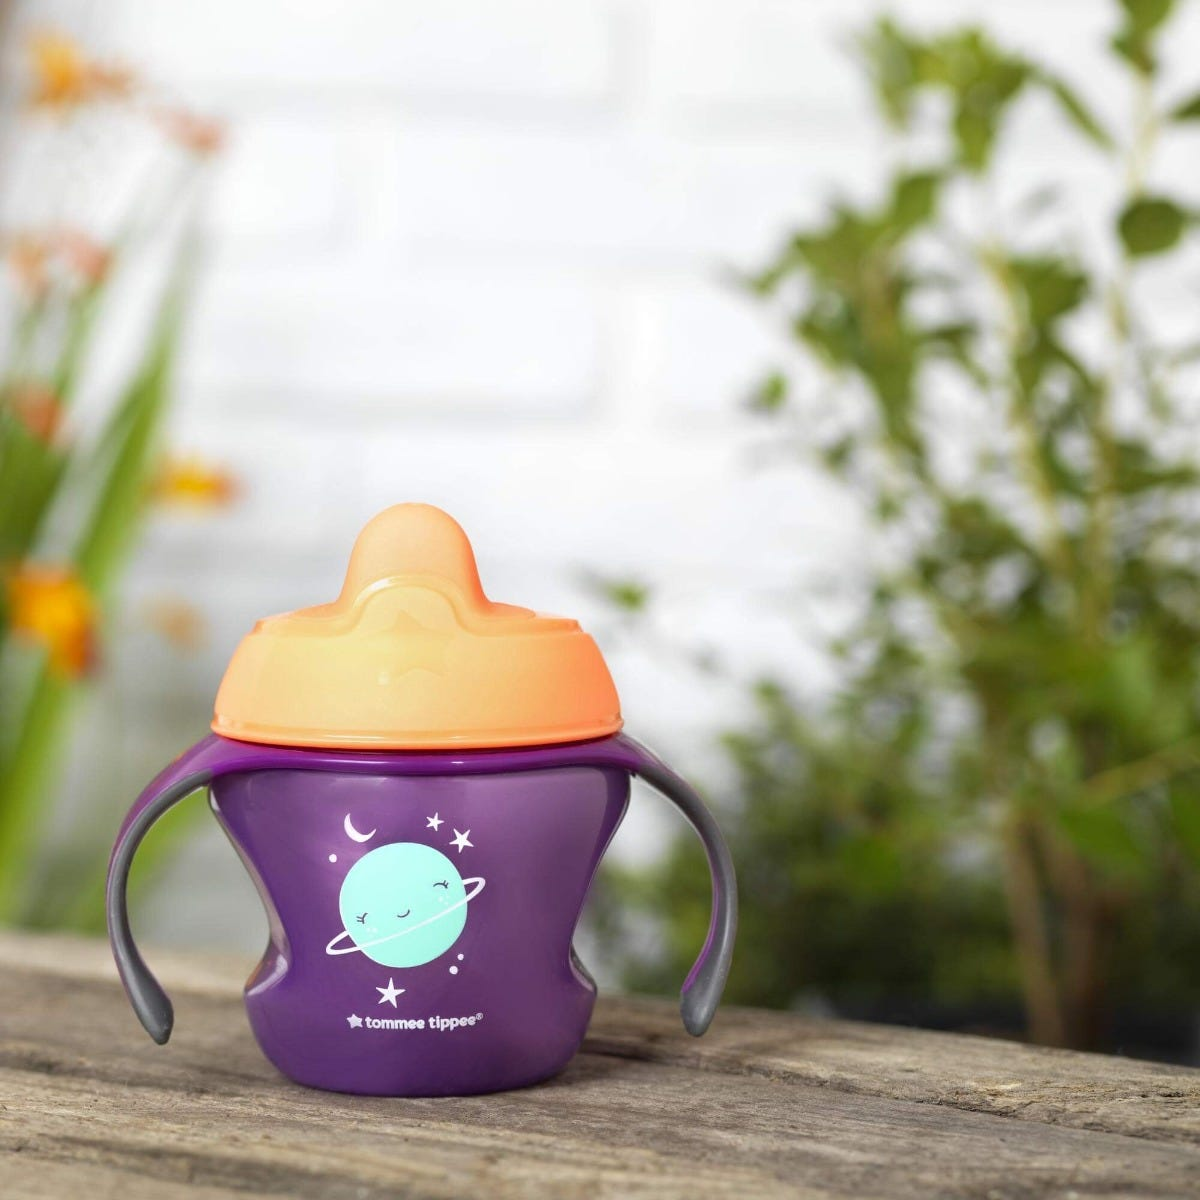 purple-first-sippee-cup-with-orange-soft-spout-on-garden-bench